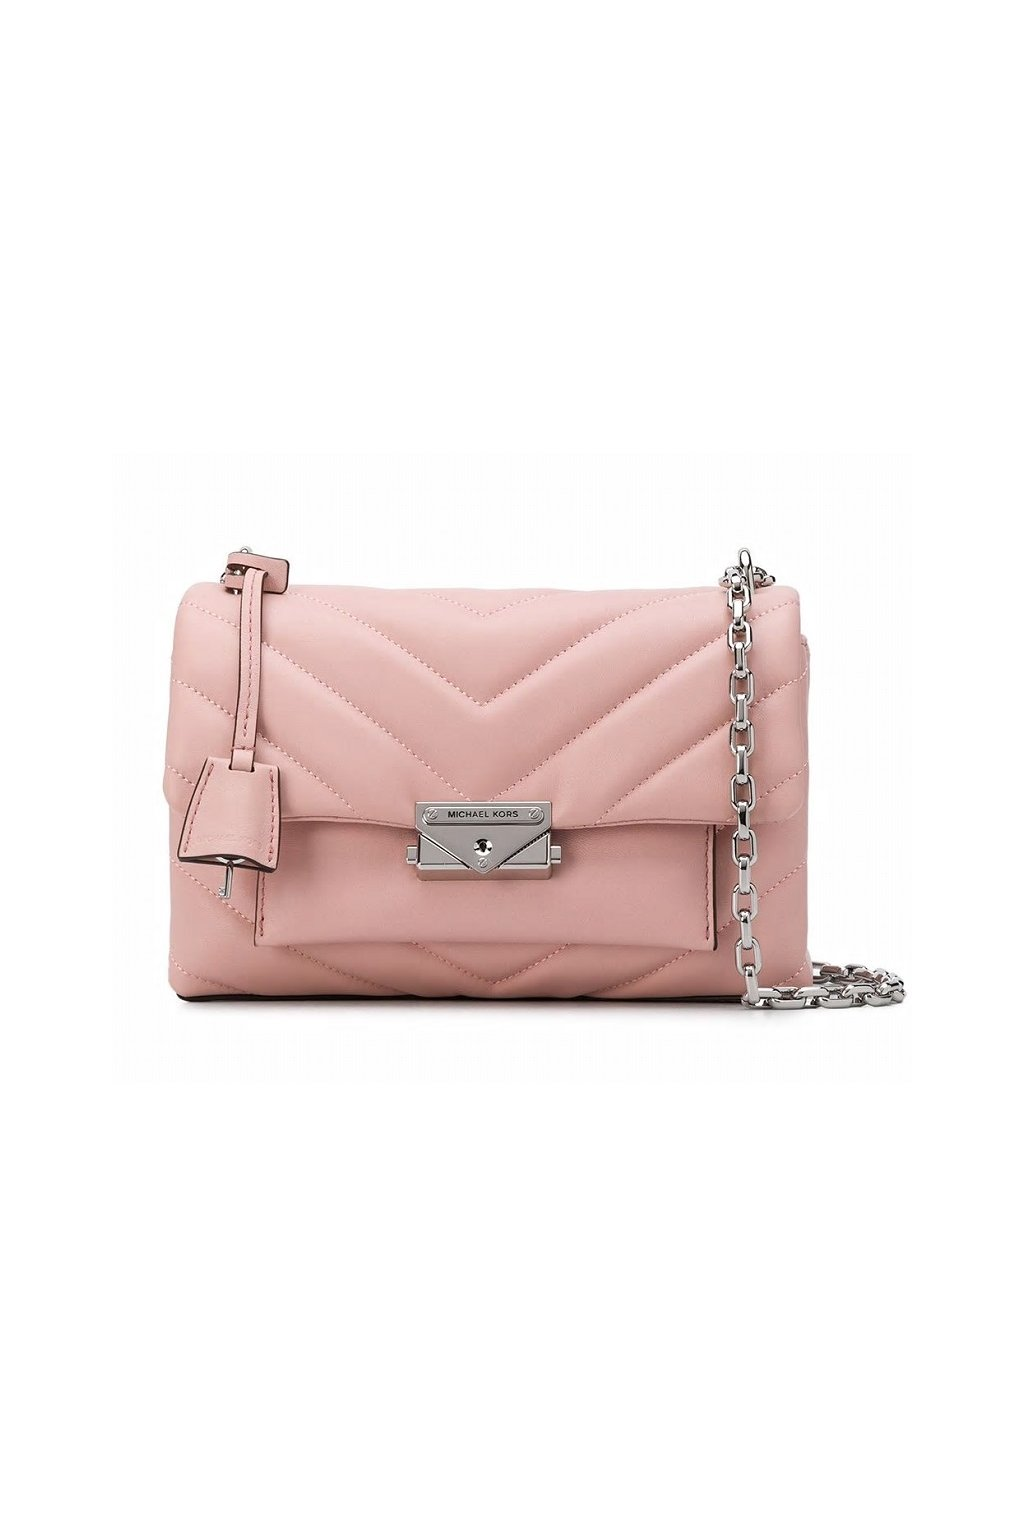 30T9S0EL8L Dámská kabelka Michael Kors Cece Medium Quilted Leather Convertible Shoulder růžová